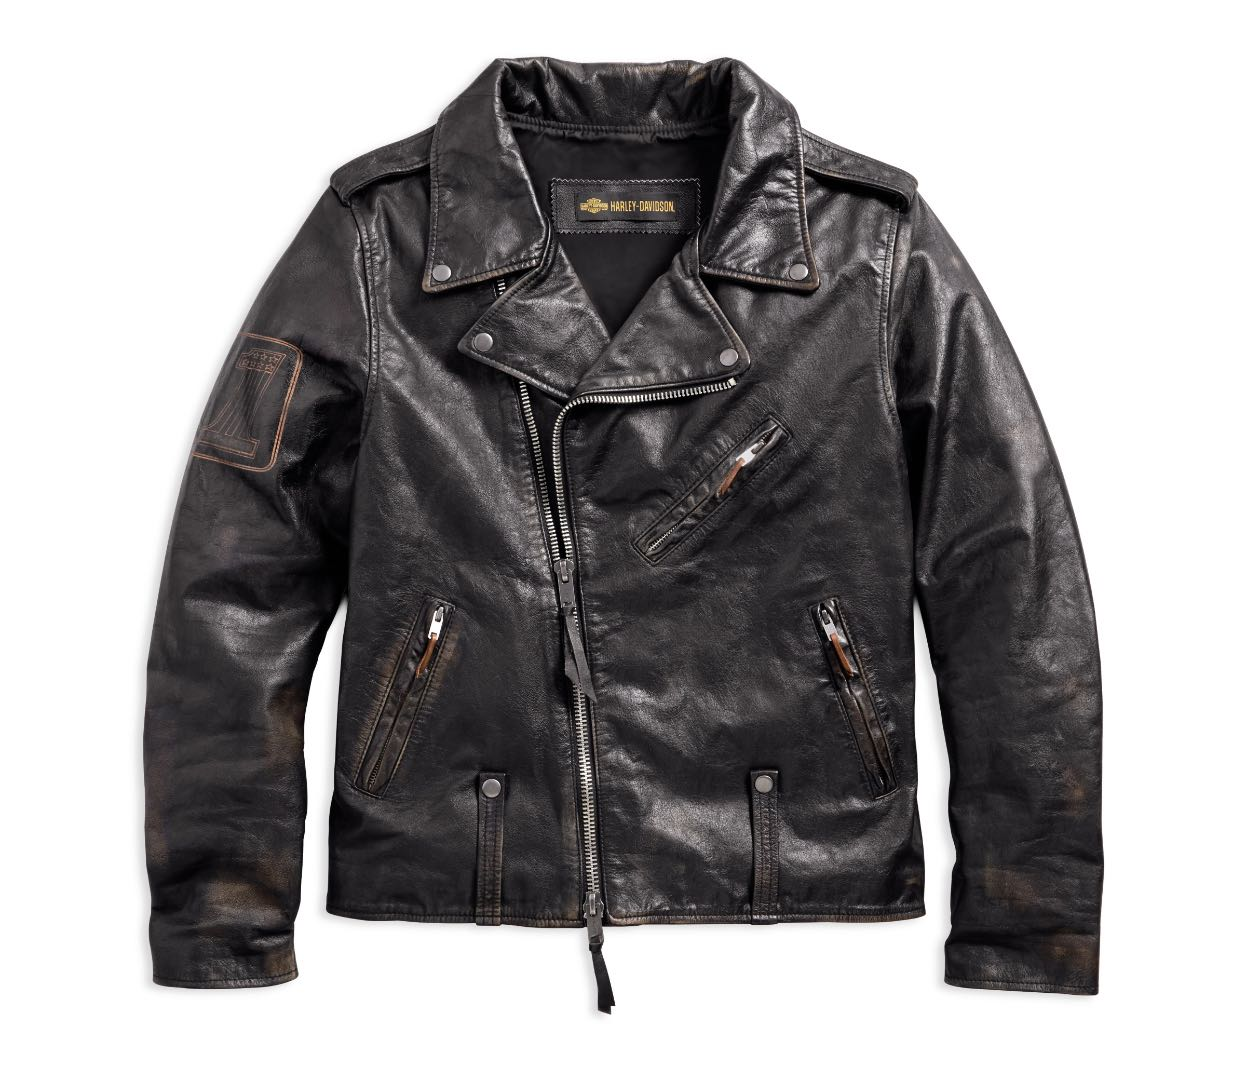 Harley-Davidson 1903 Apparel Collection Leather Jacket